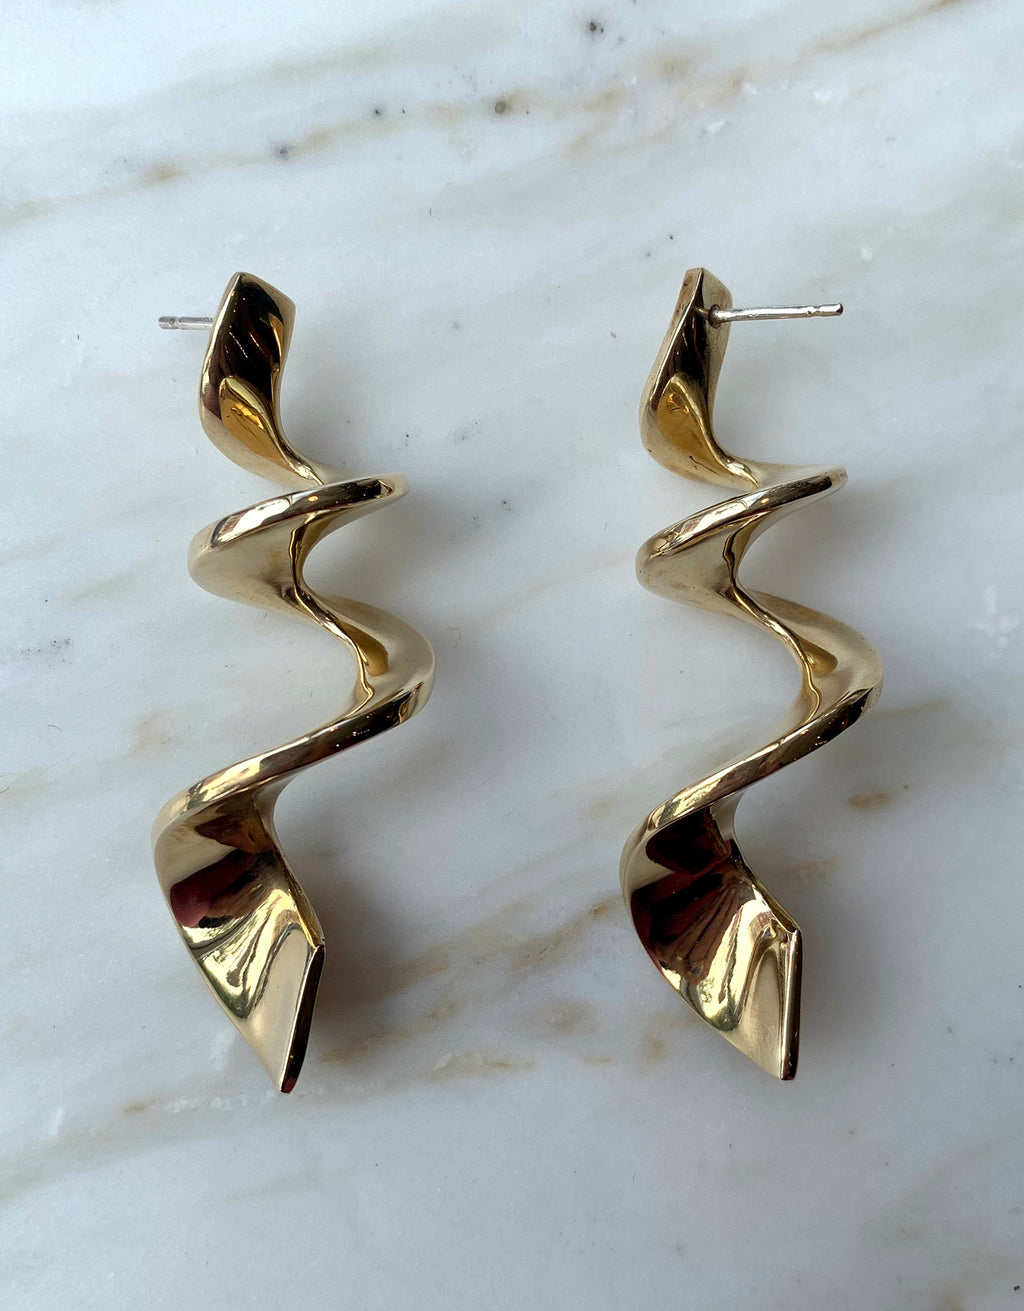 Quarry swirling brass Whorl Earring. Available at FAWN Toronto.